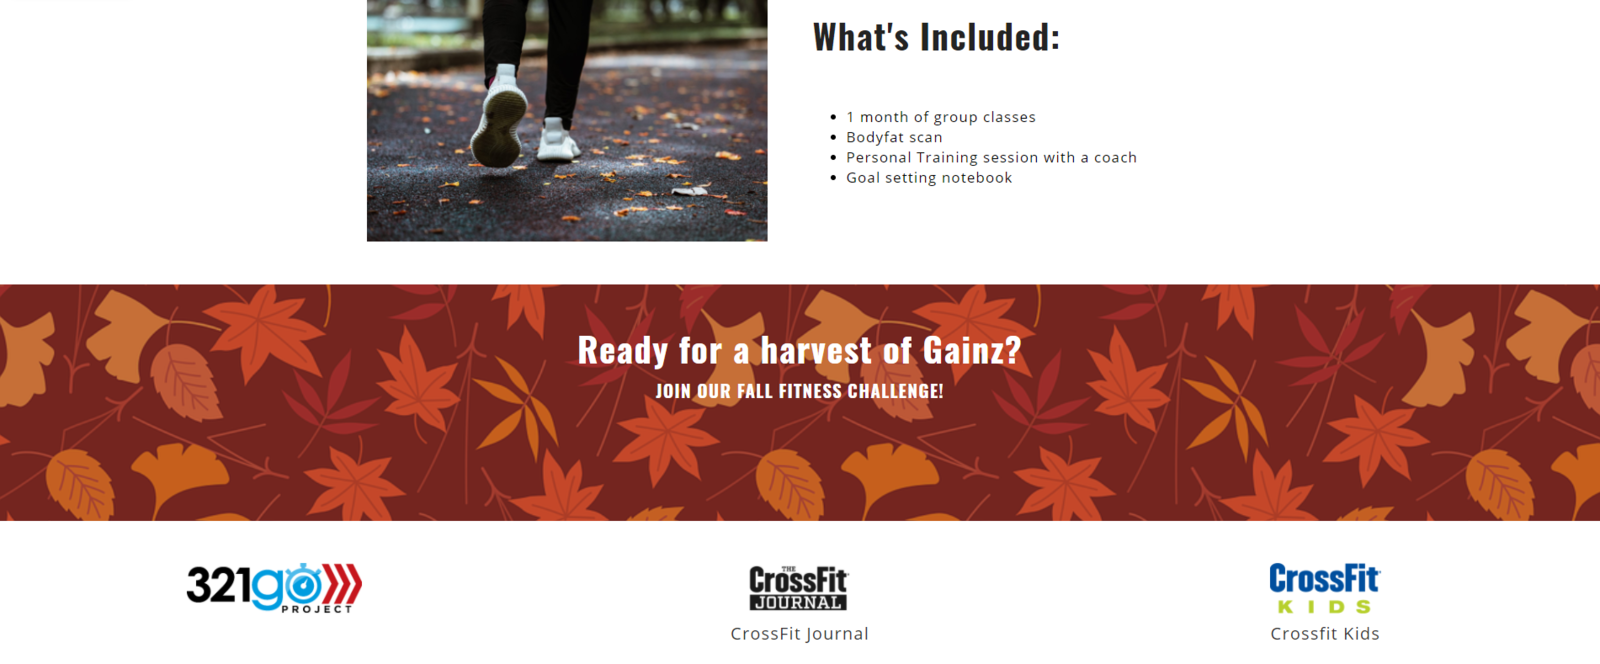 Example of  Partner block with 321Go Project, CrossFit Journal and CrossFit Kids links